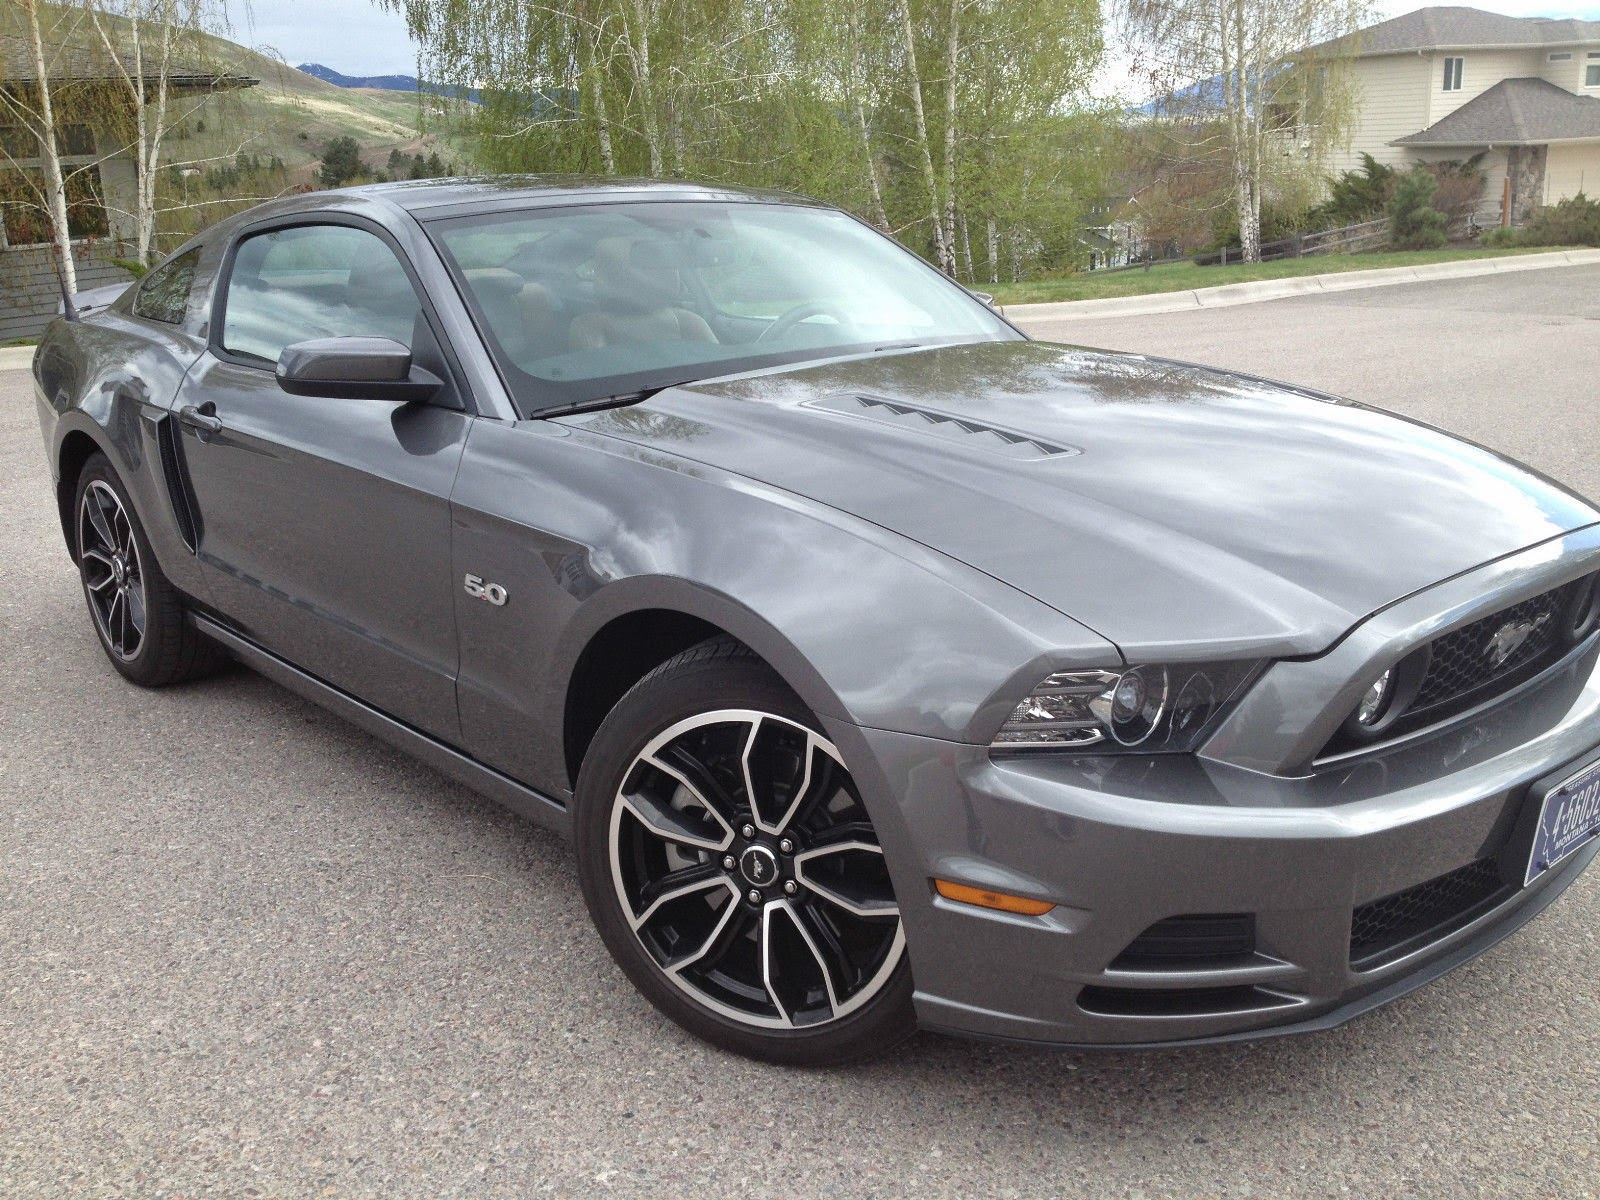 2014 05 11 For Sale American Muscle Cars 2002 Mustang Mach Sound System Perfect Condition Smoke Gray 2013 Gt Premiumkept In Climate Controlled Garage At Home Low Milage 12k Nearly All Hwy Fully Loaded With Gps